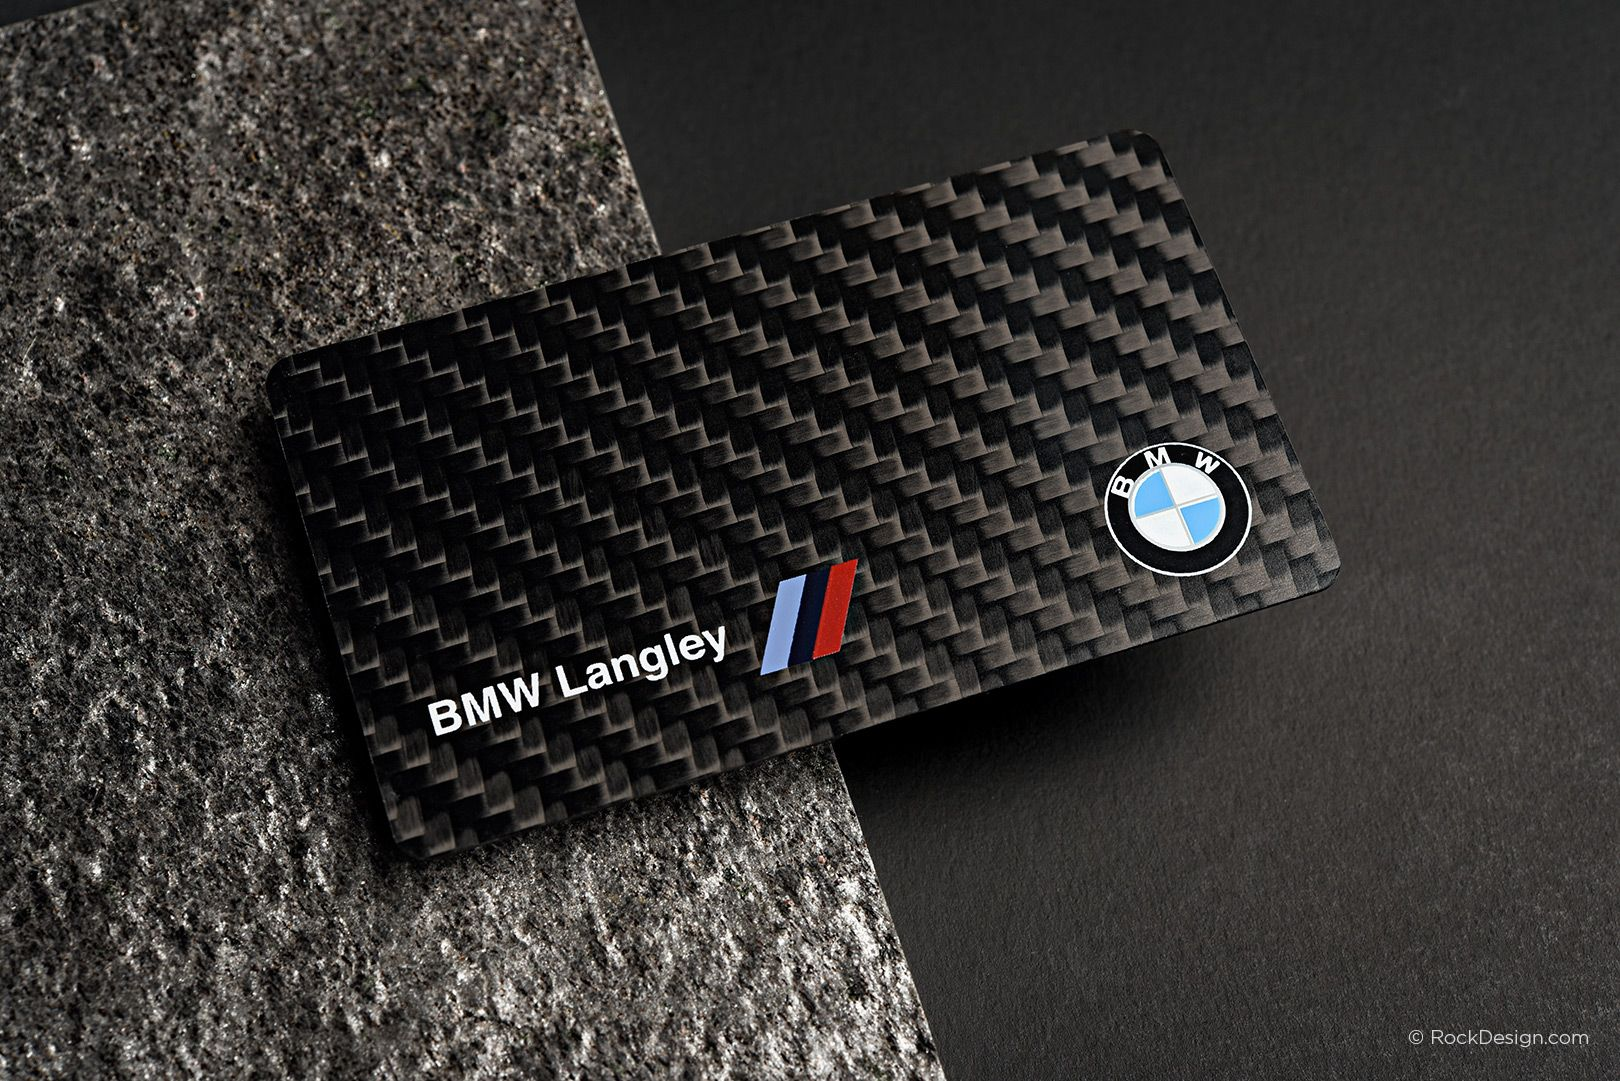 Magnificent business cards langley contemporary business card carbon fiber business cards rockdesign luxury business card reheart Choice Image